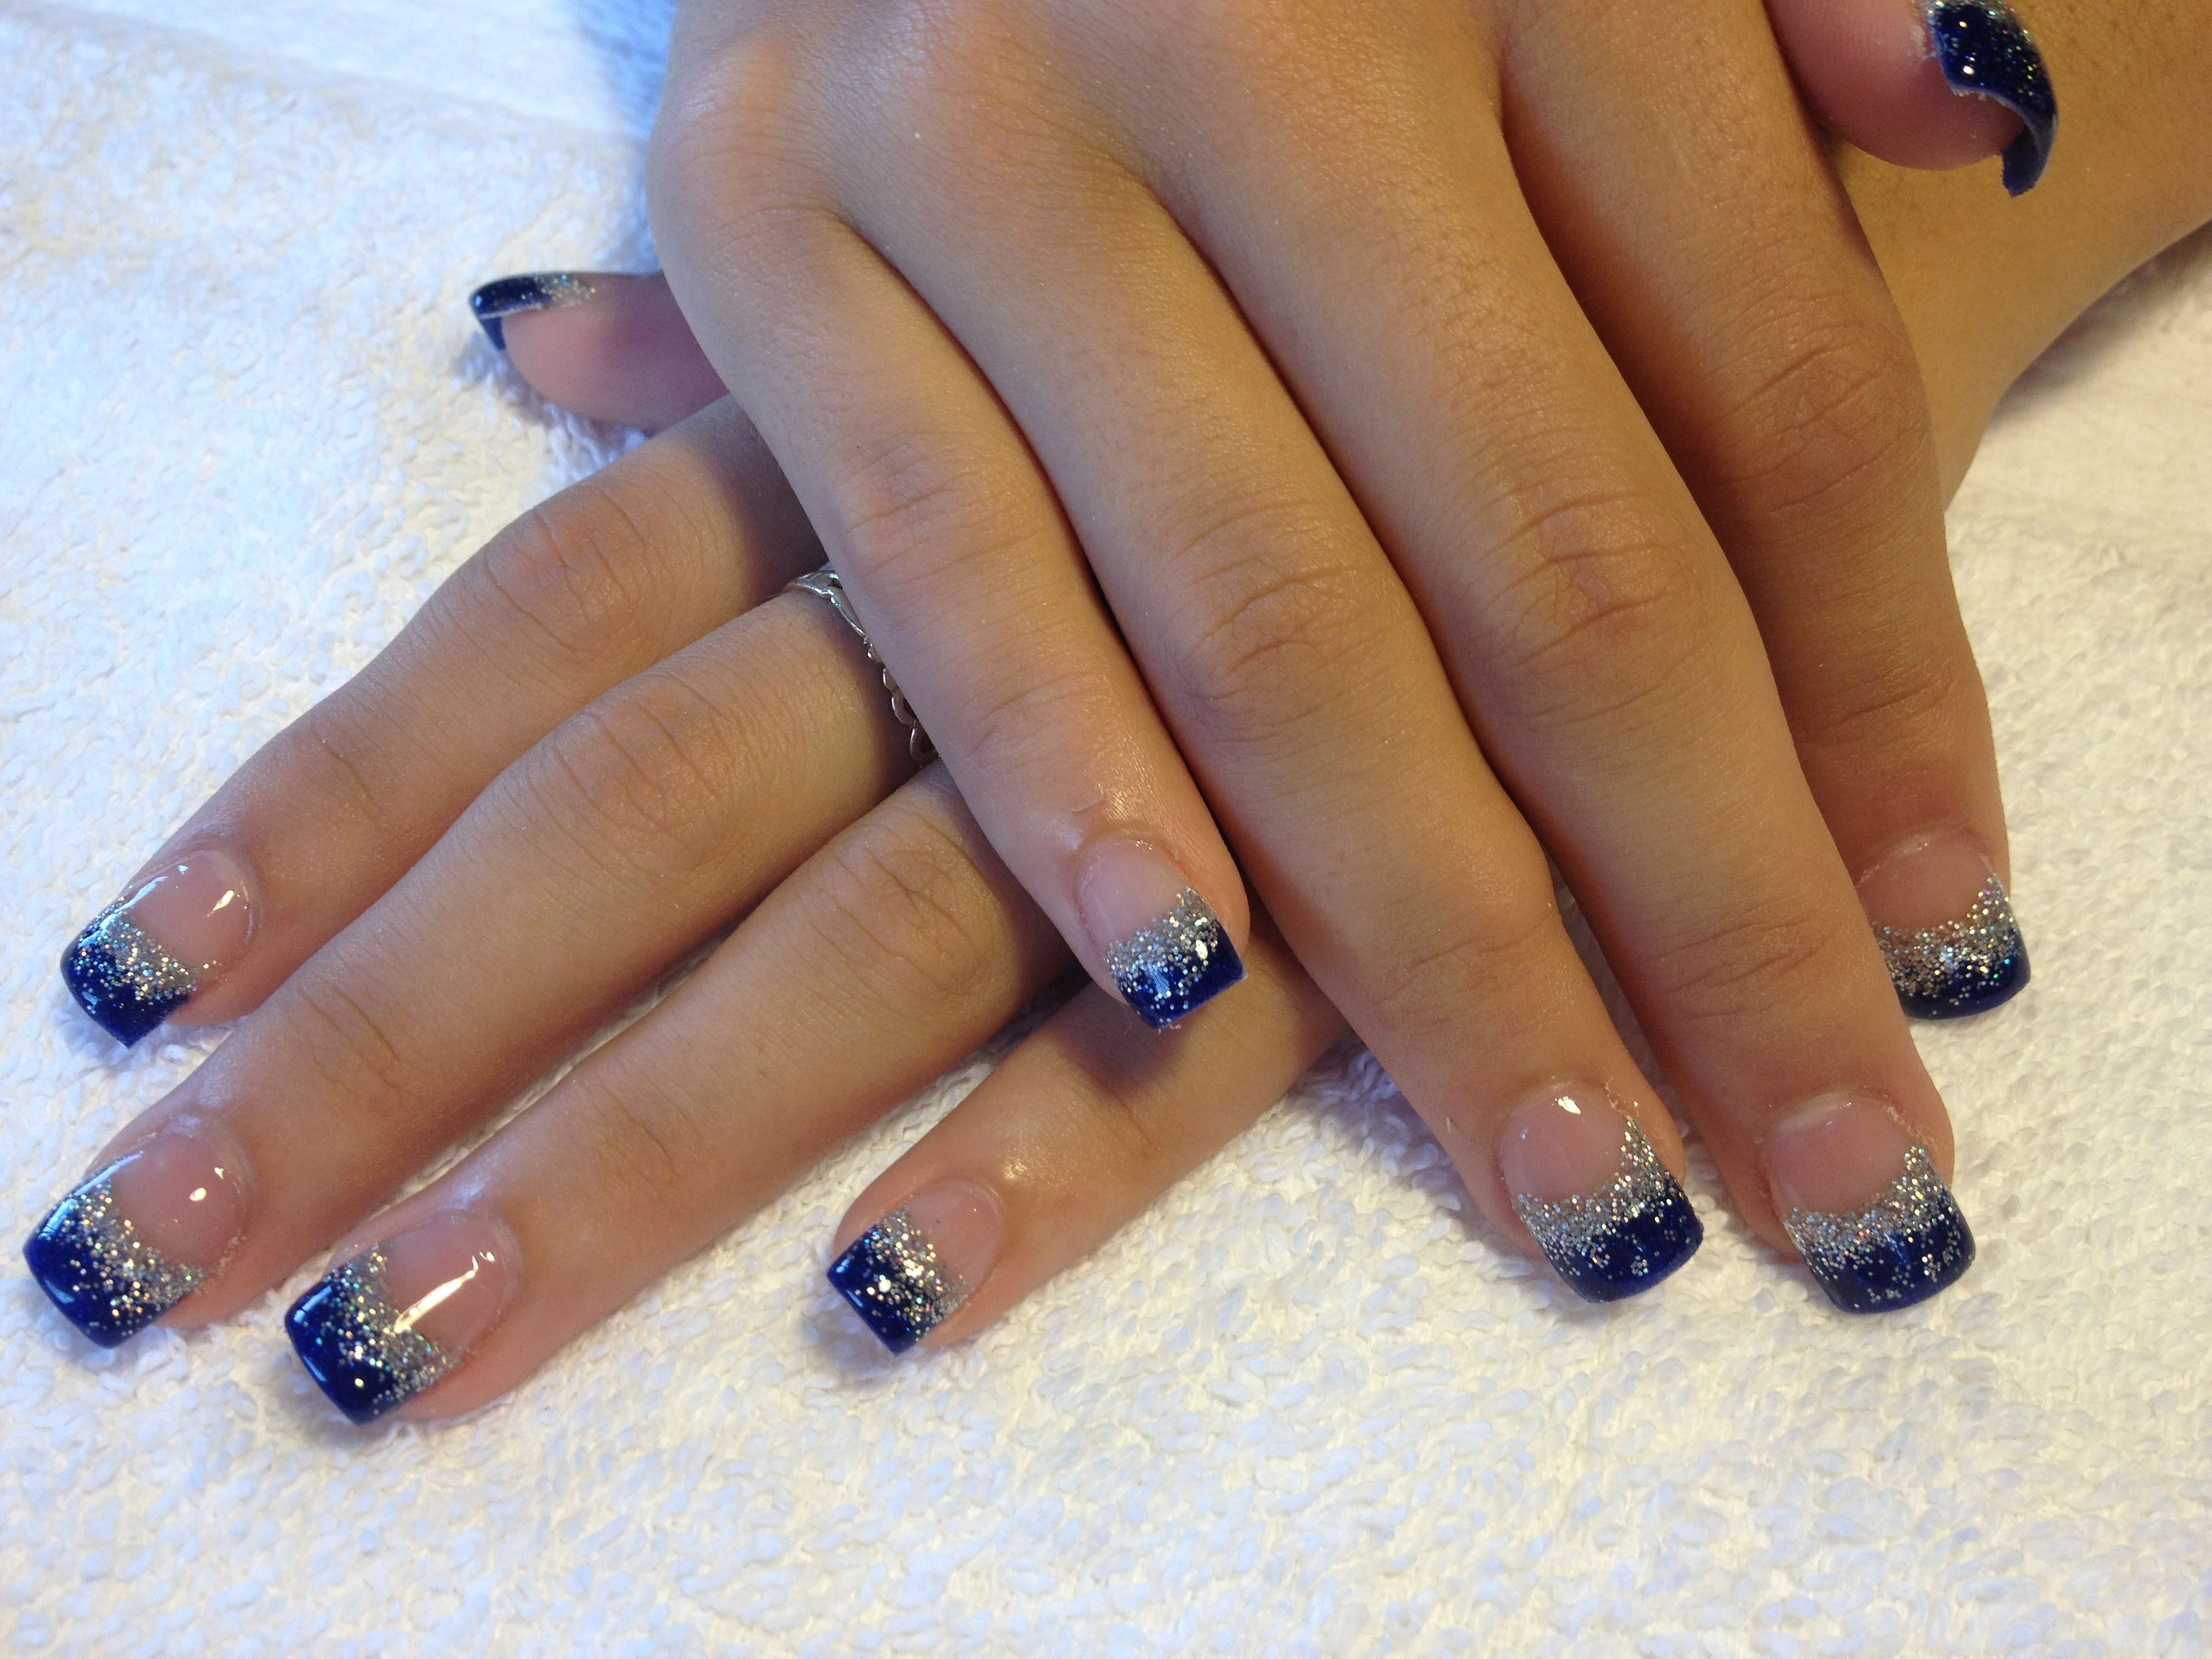 Pin By Leah Carvalho On Nails Blue Glitter Nails Navy And Silver Nails Blue And Silver Nails